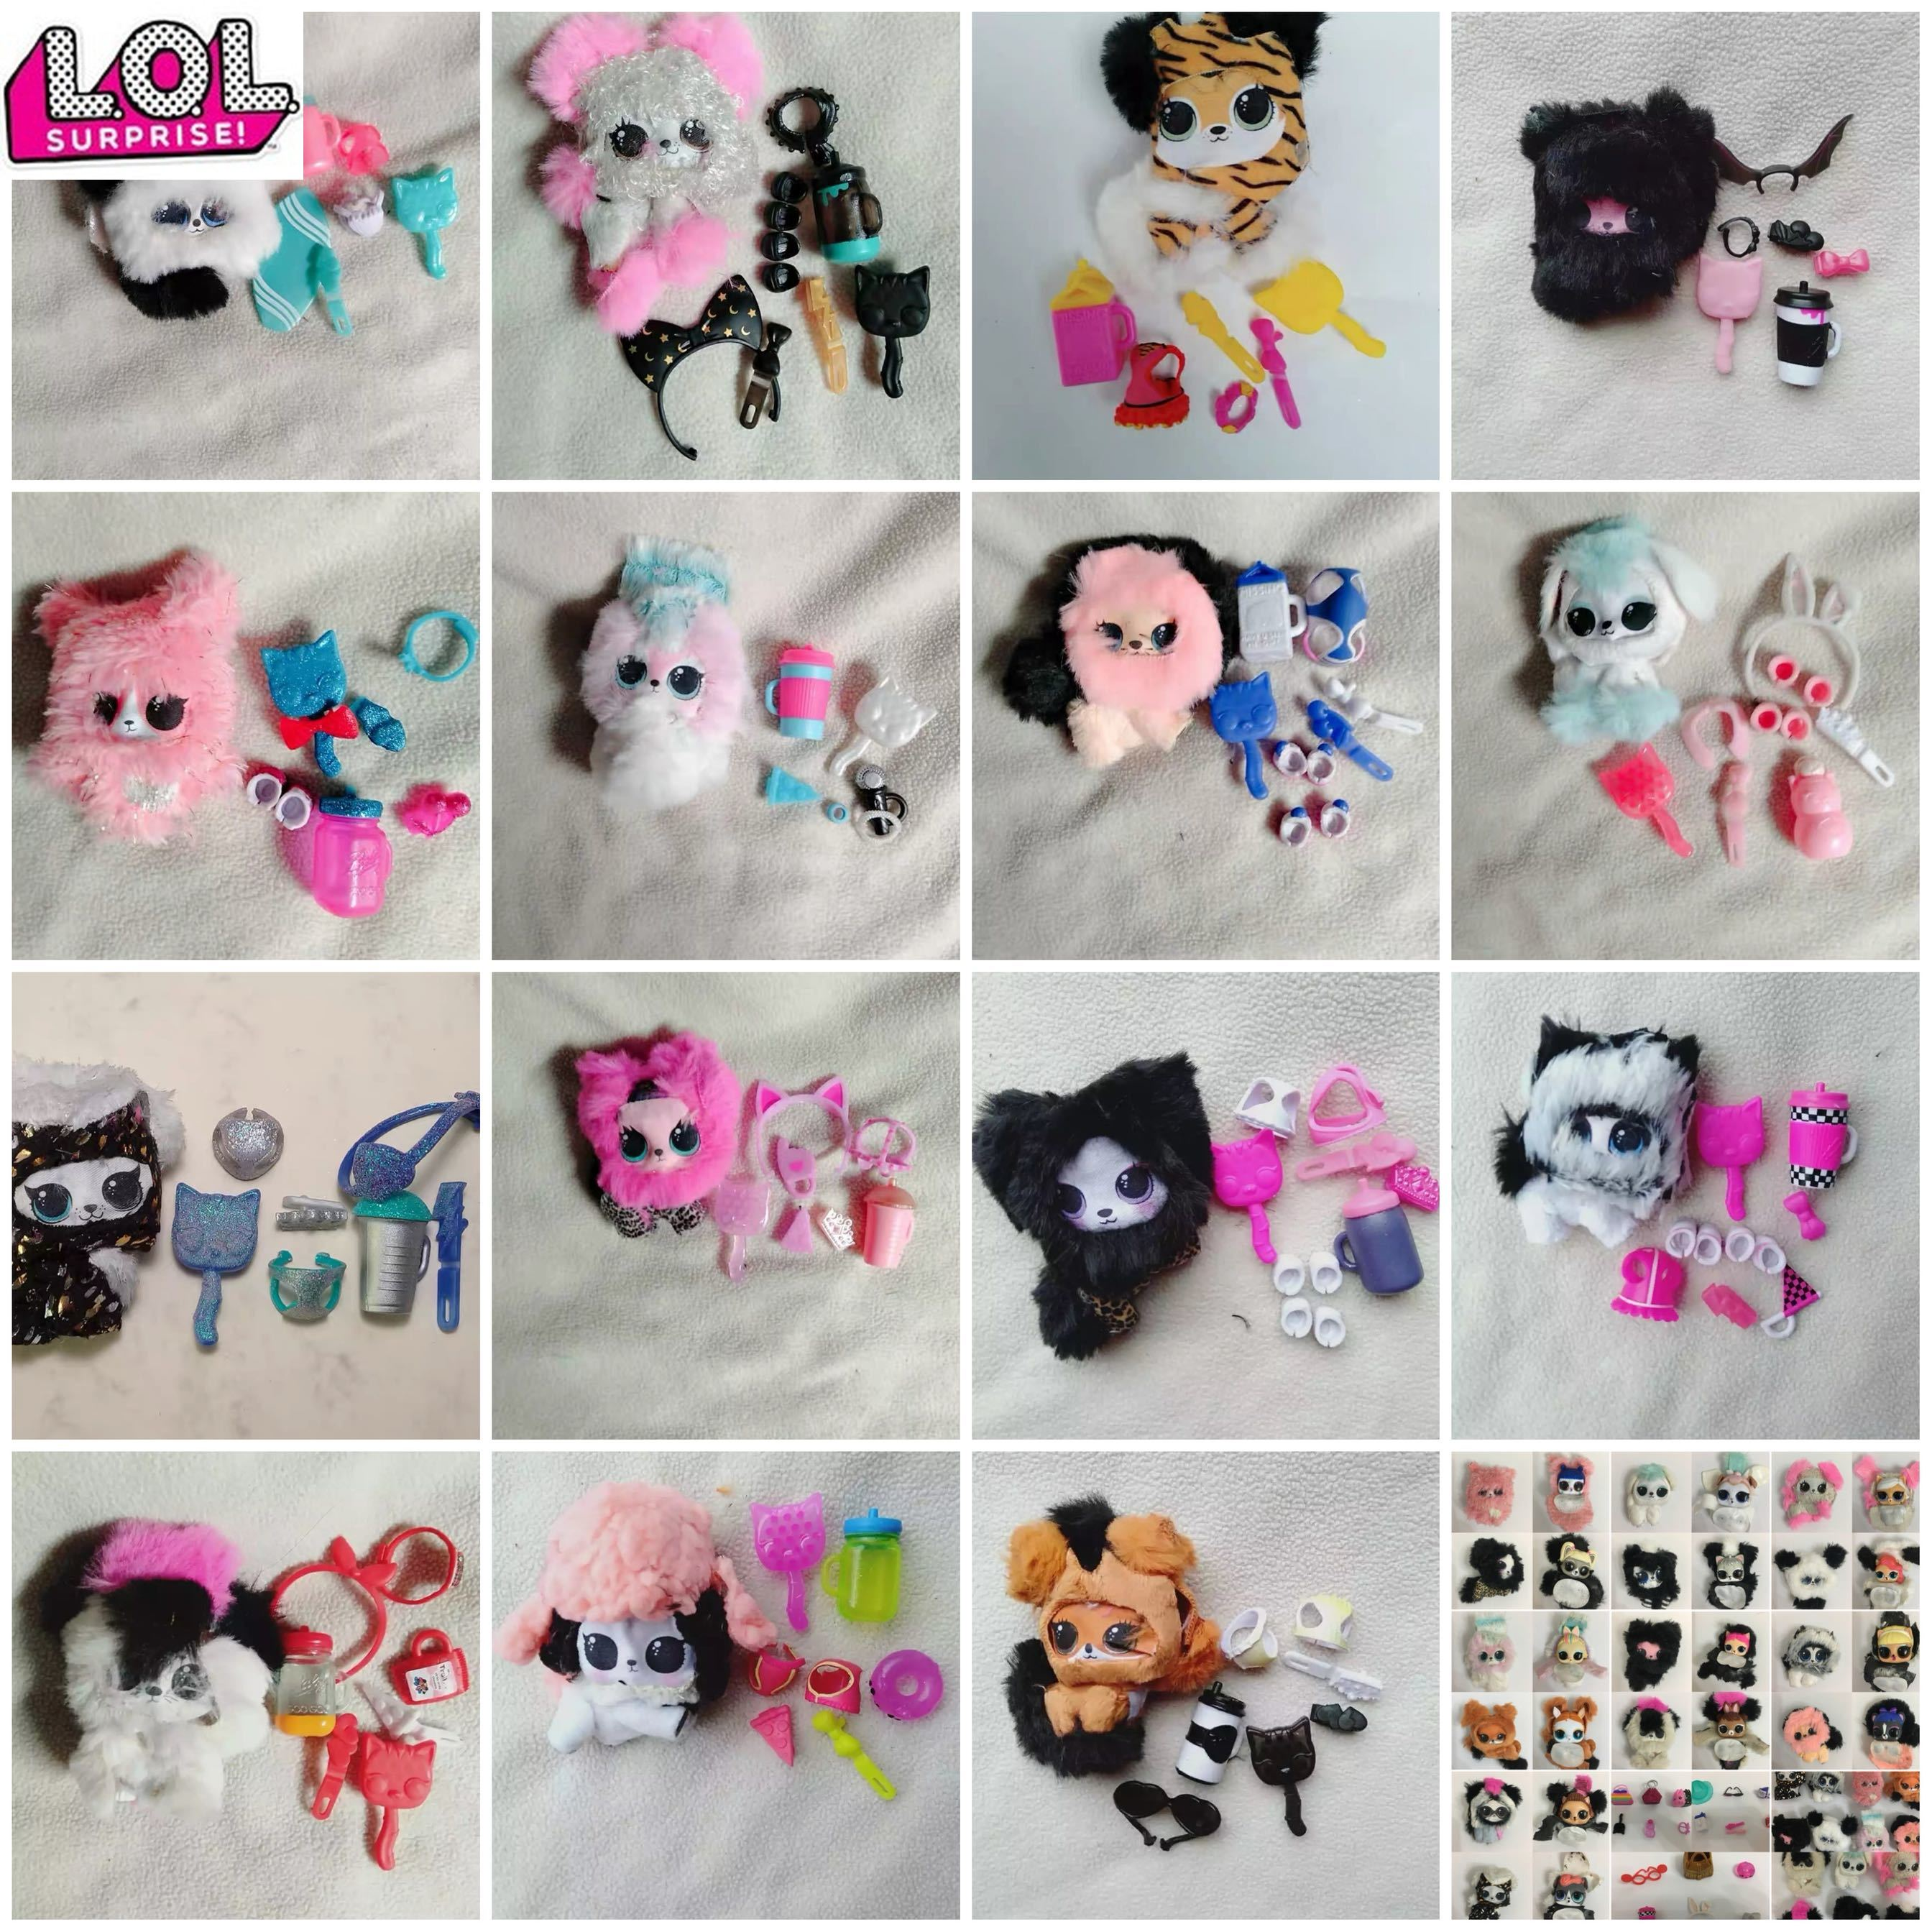 MGA LOL Original Lol Surprise Doll Small Furry Animals Anime Collection Actie & Toy Figures Model Toys For Children